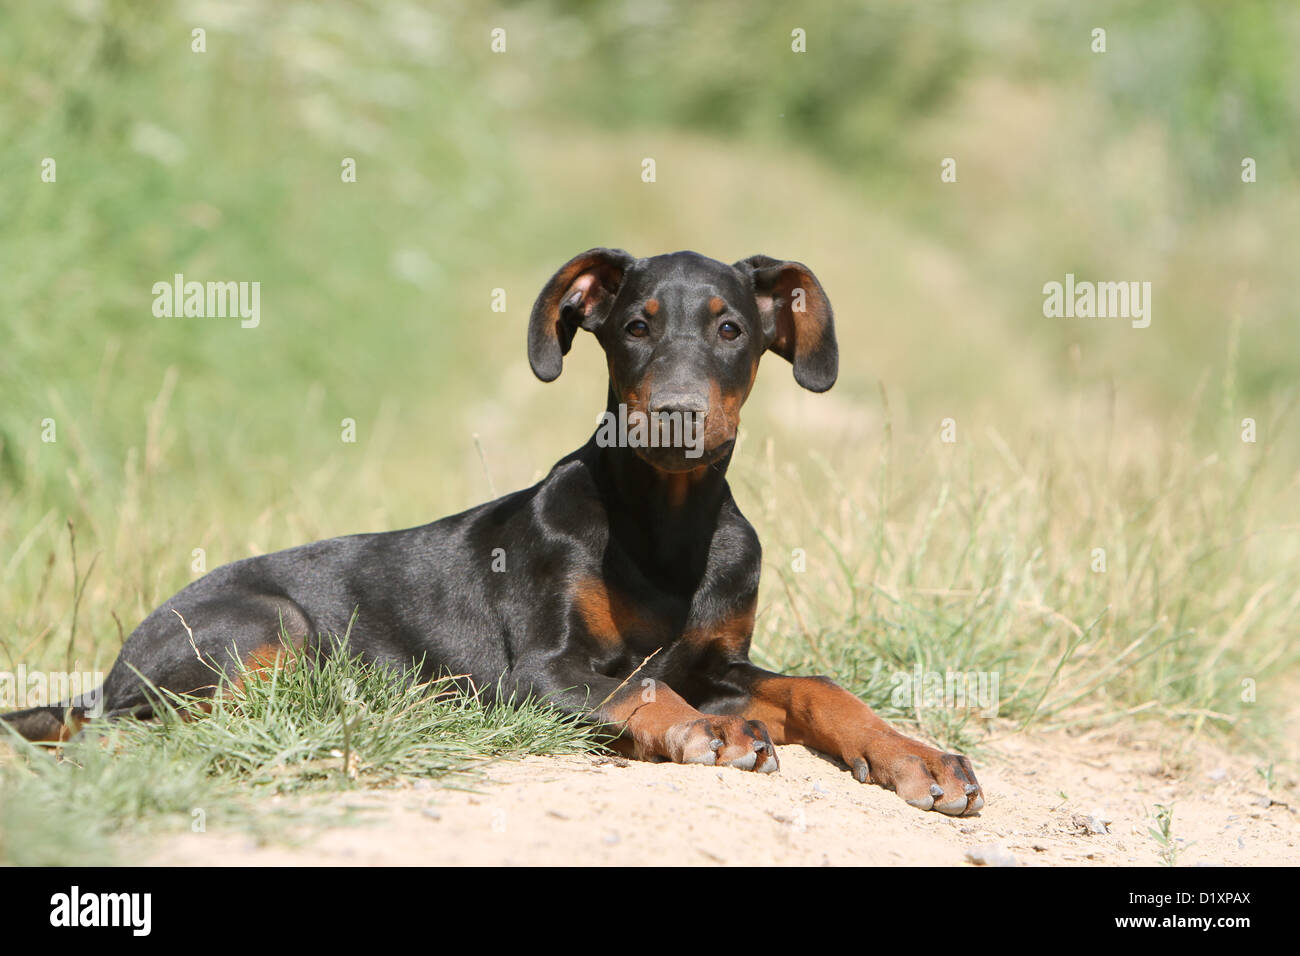 Dog Doberman Pinscher With Natural Ears Natural Tail Black And